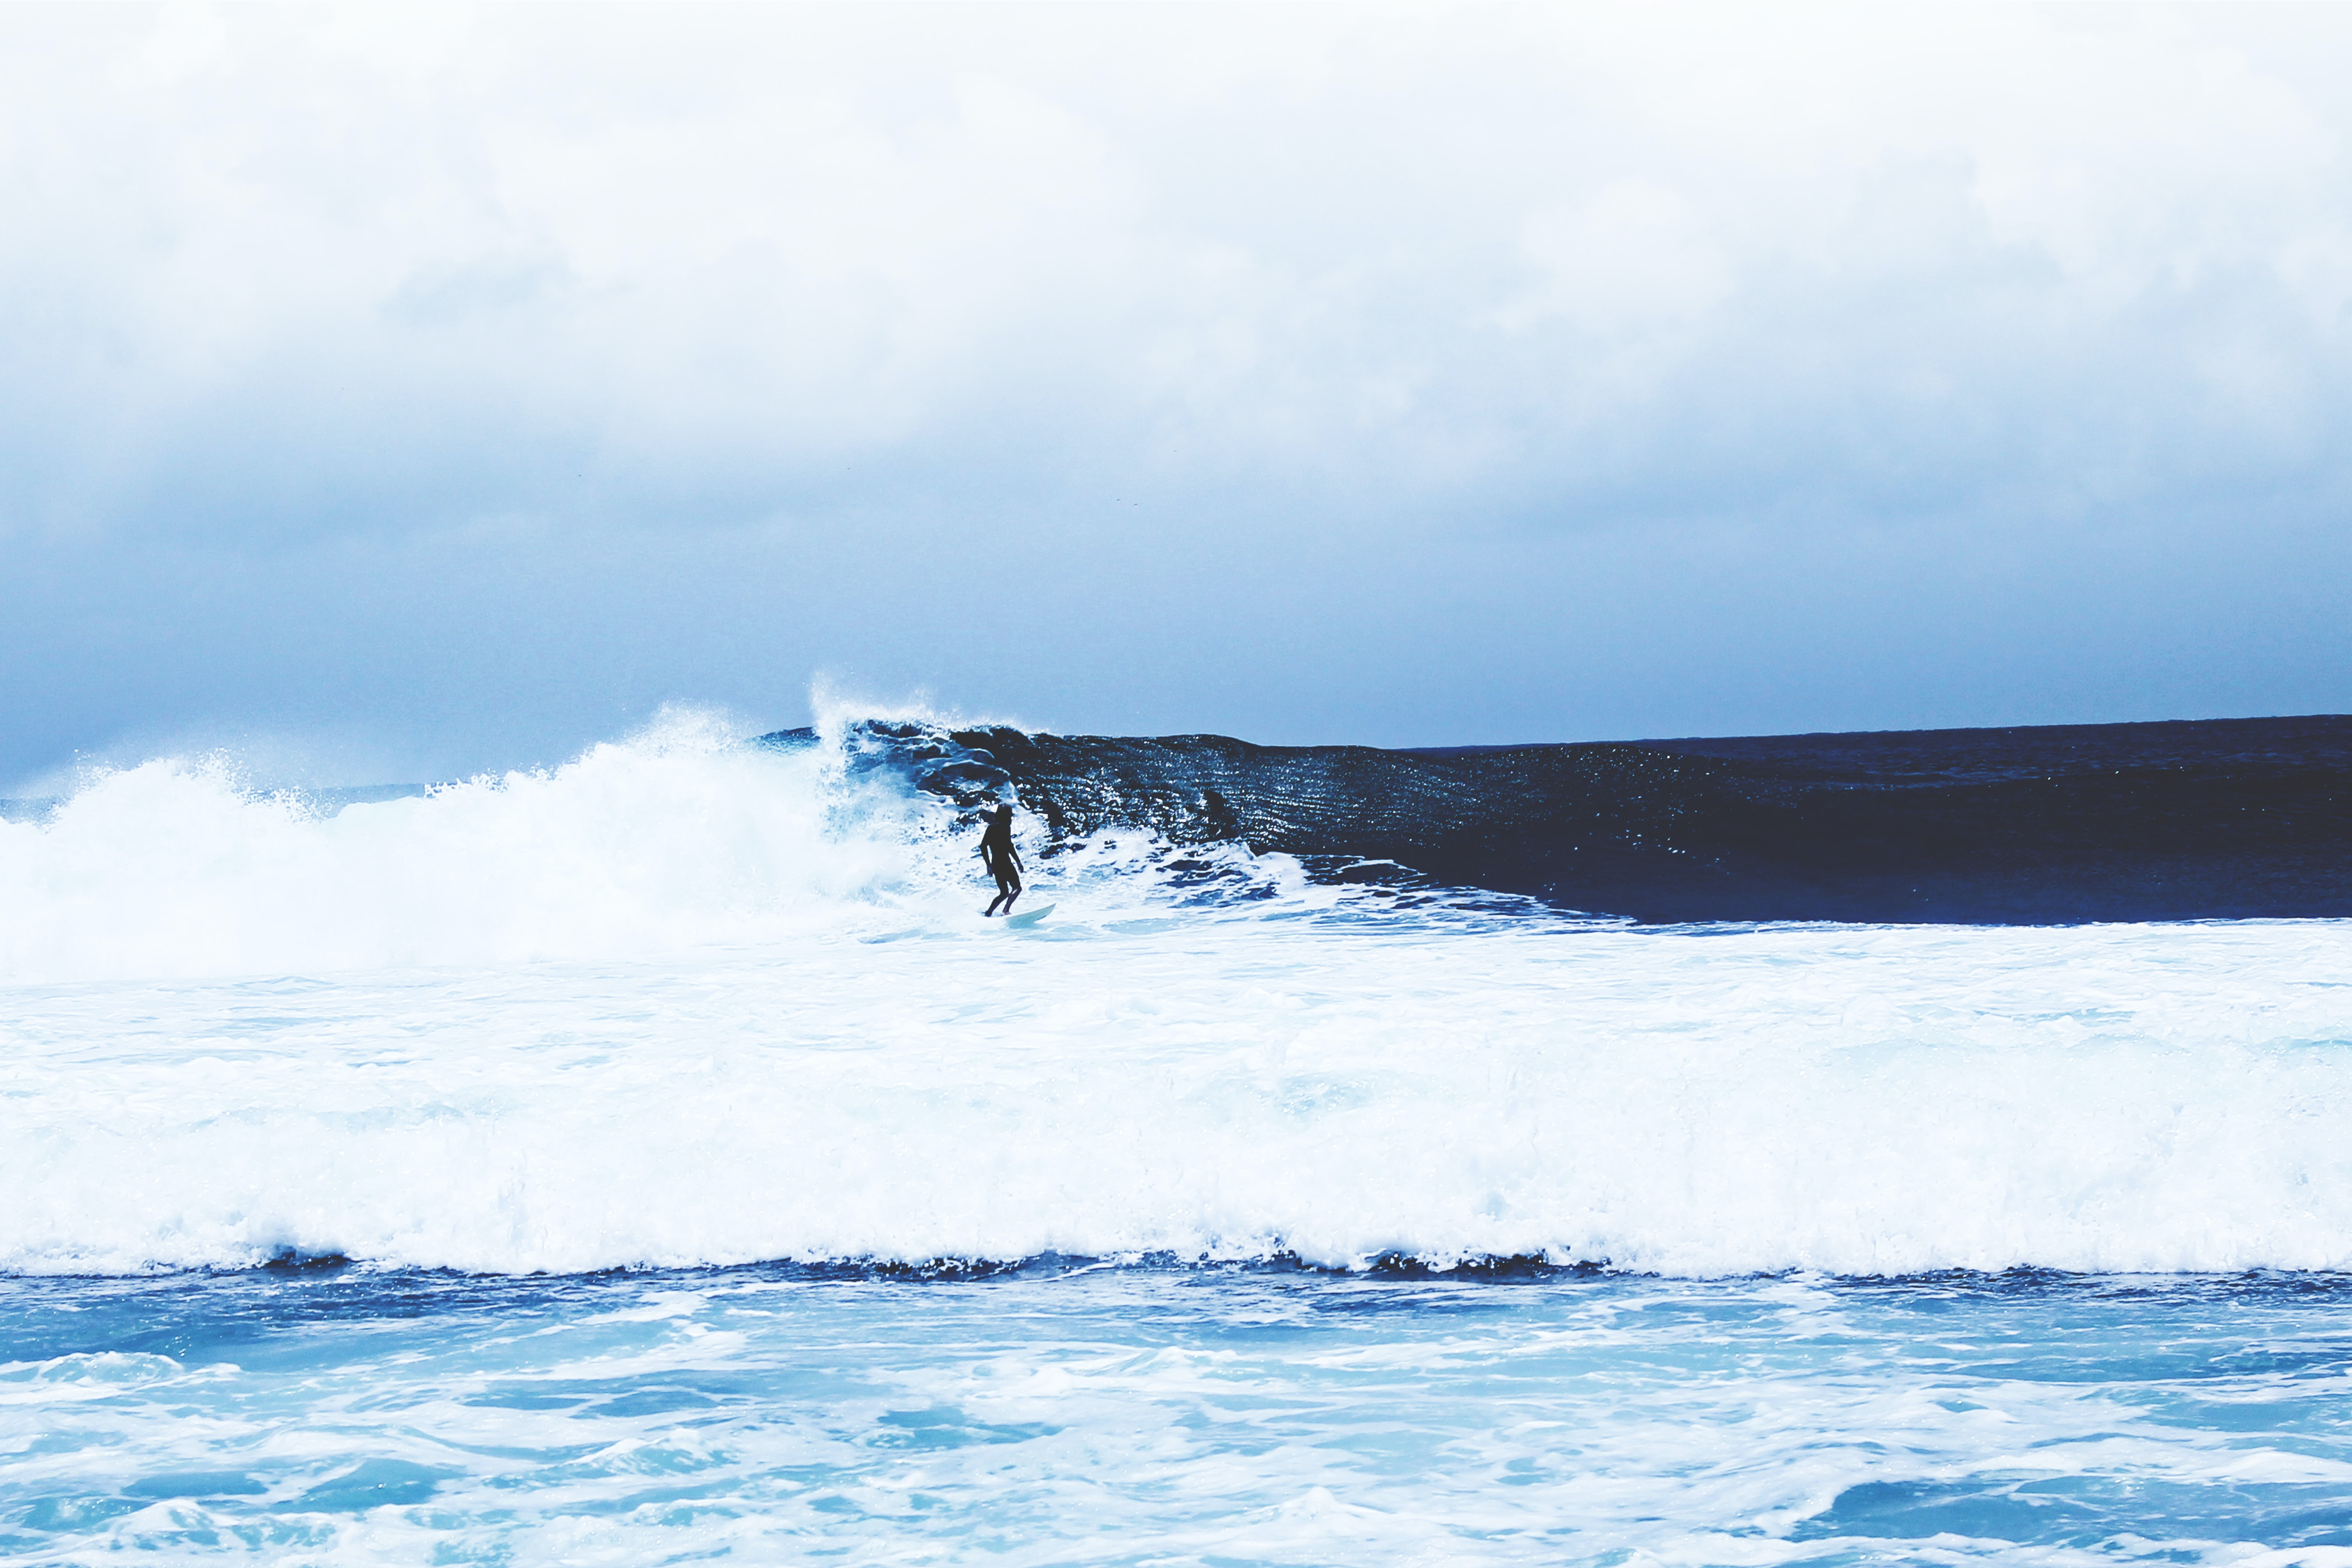 A distant surfer riding a rough ocean wave in West Java